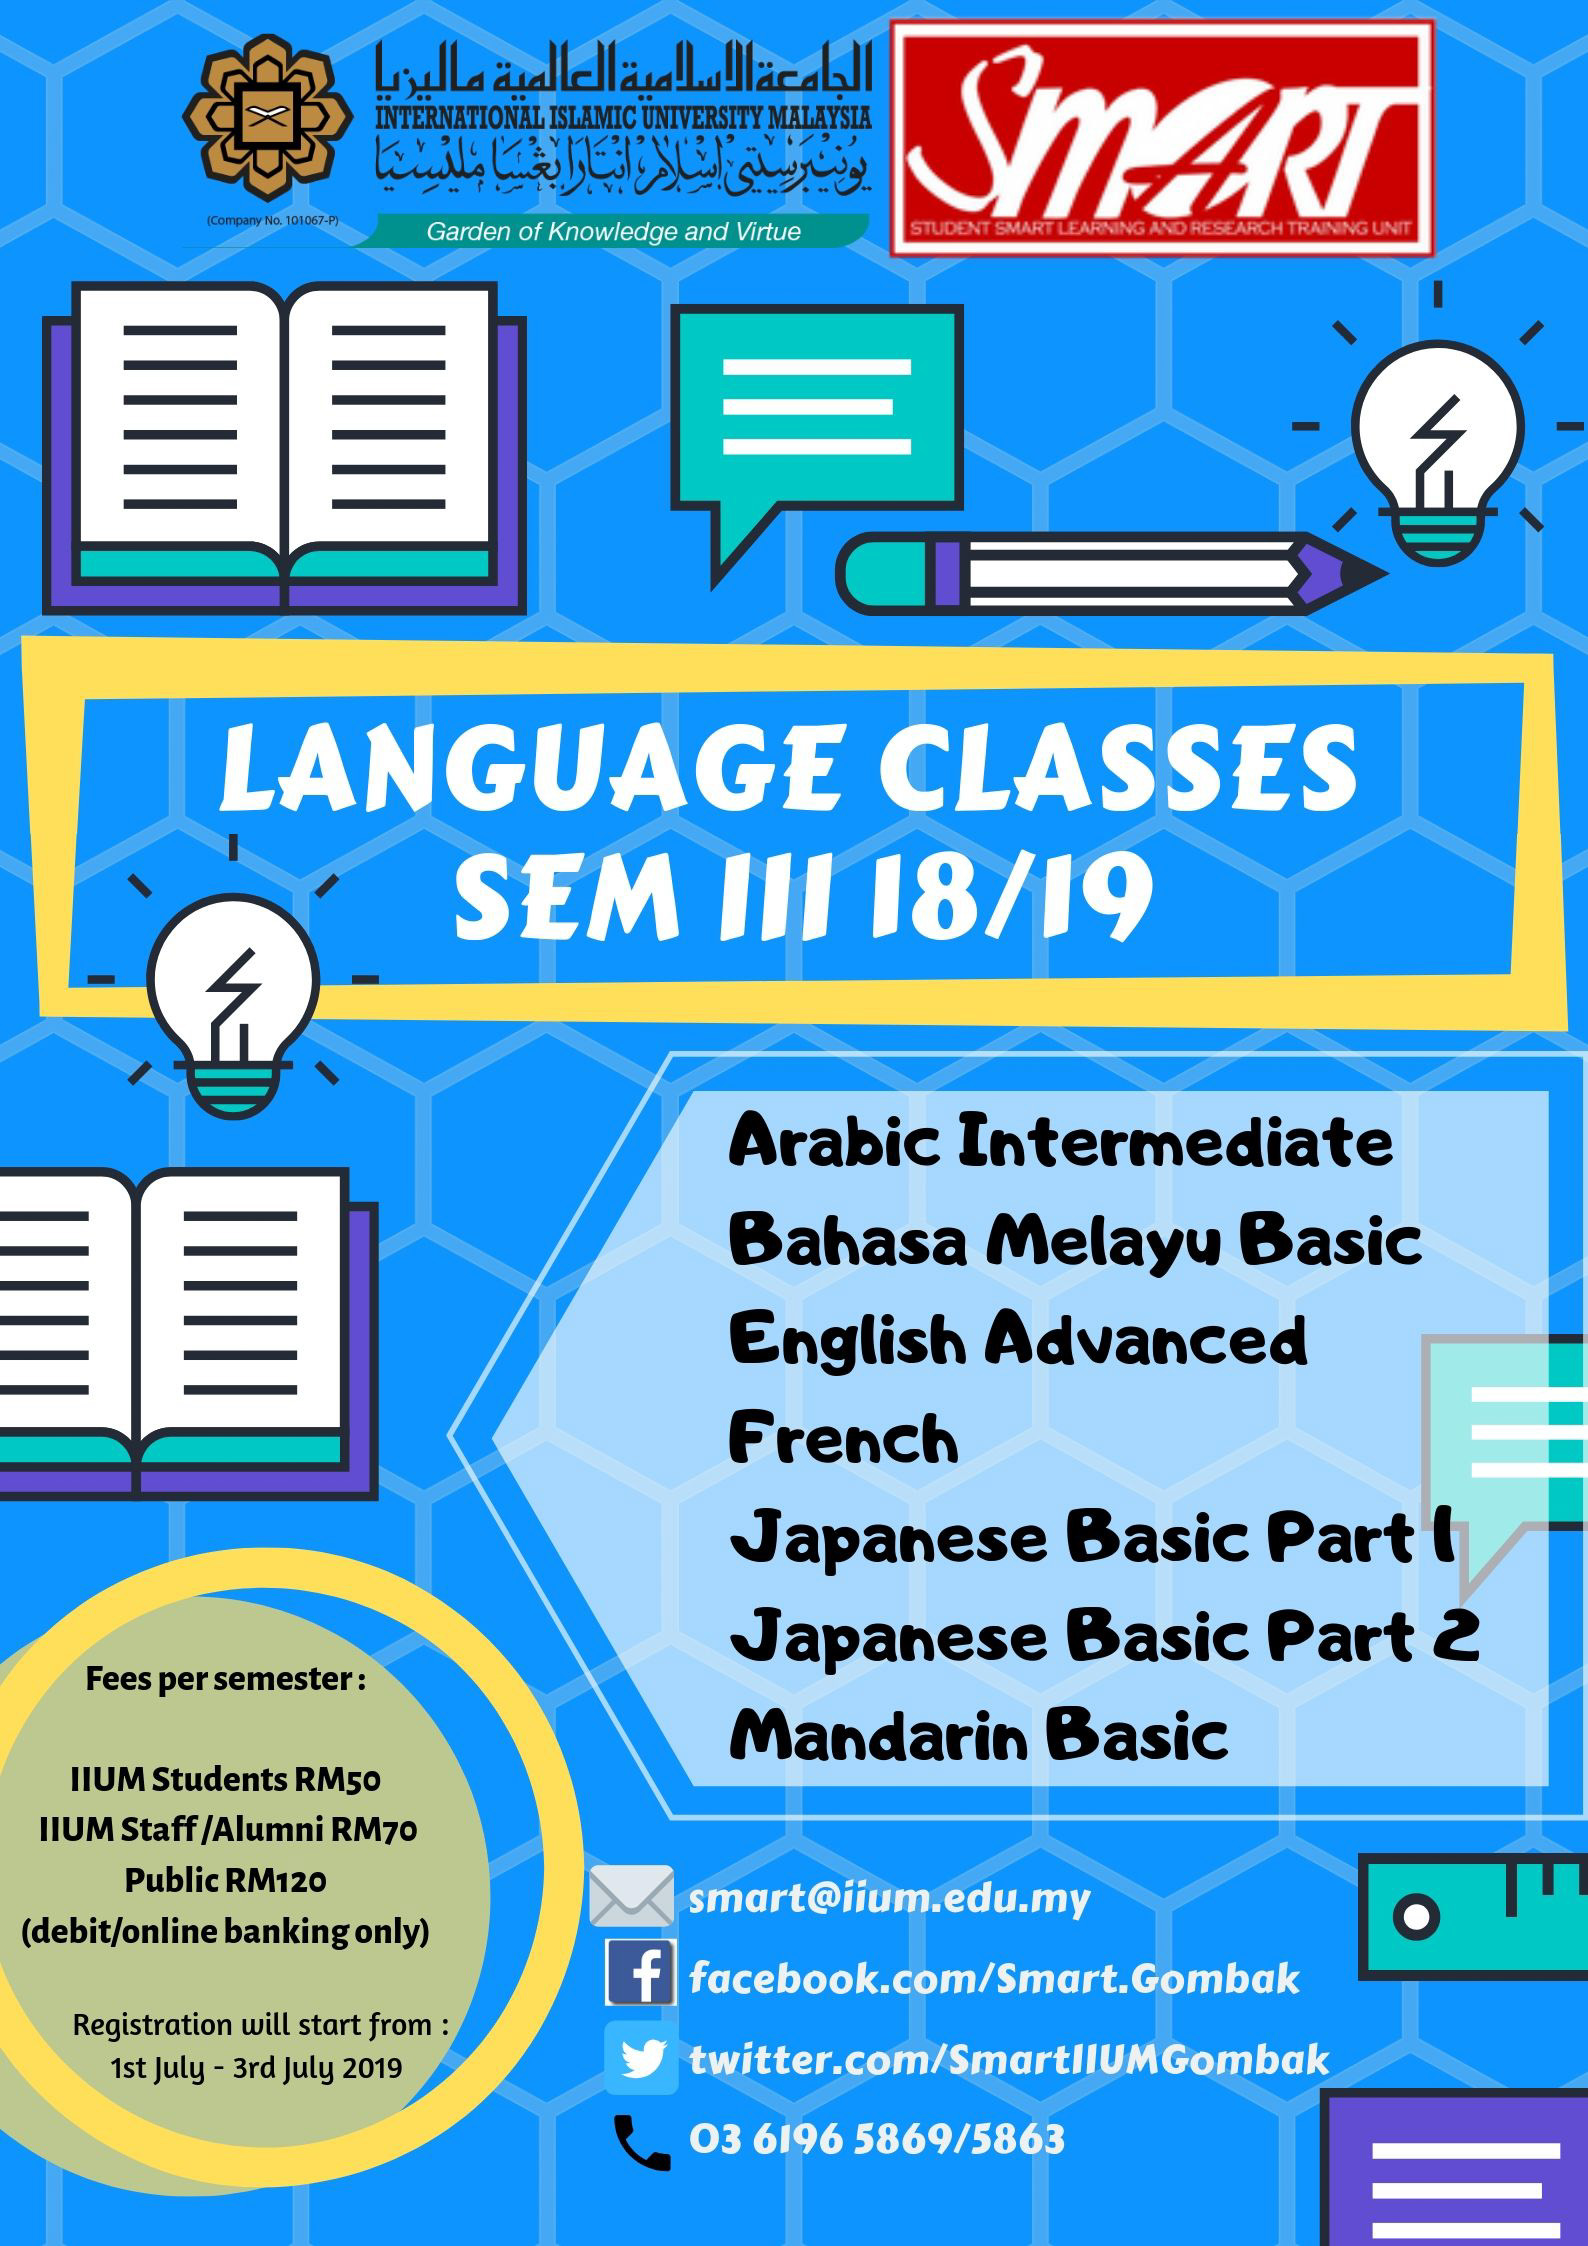 COME AND REGISTER : SEM 3, 2018/2019